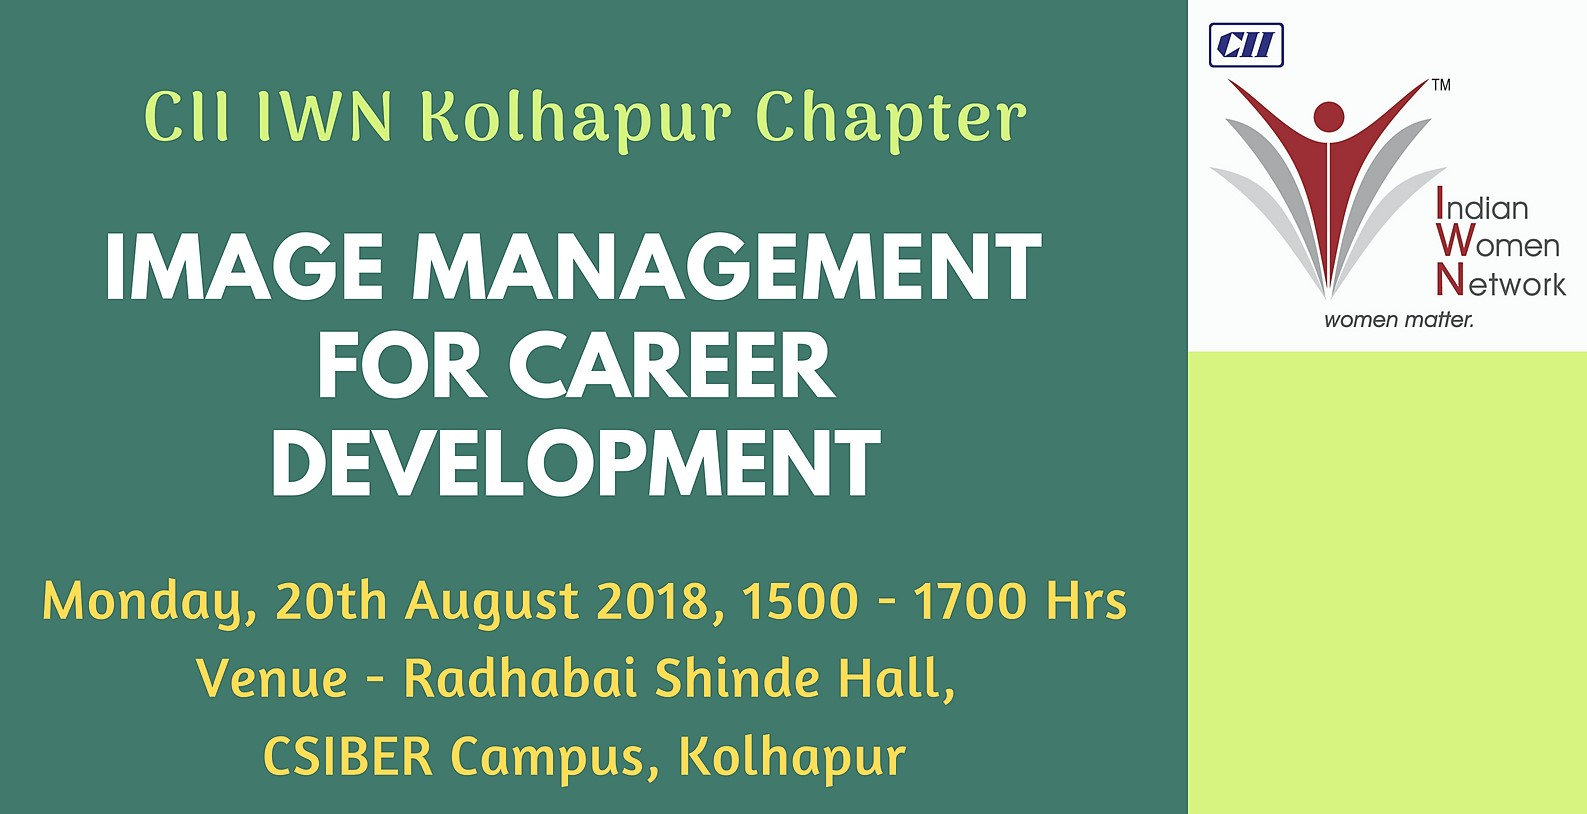 CII IWN Kolhapur Chapter - IMAGE MANAGEMENT FOR CAREER DEVELOPMENT